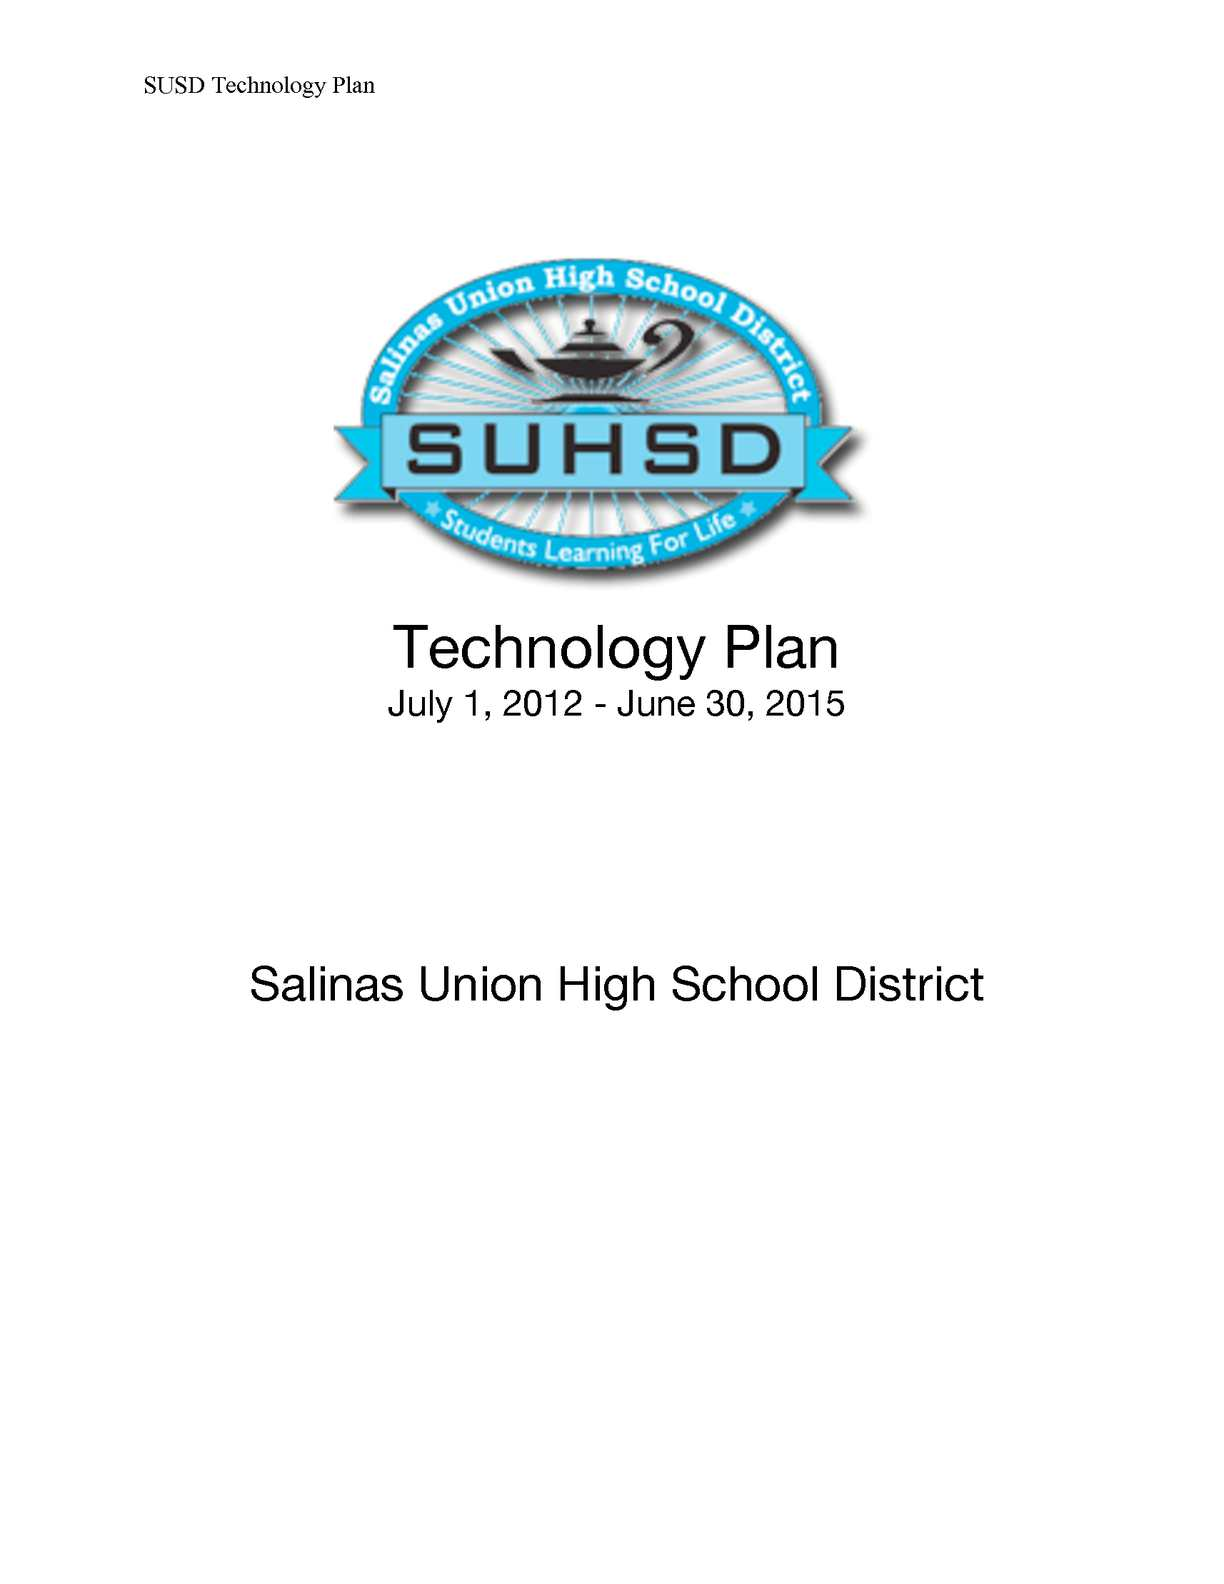 Employment — Salinas City Elementary School District